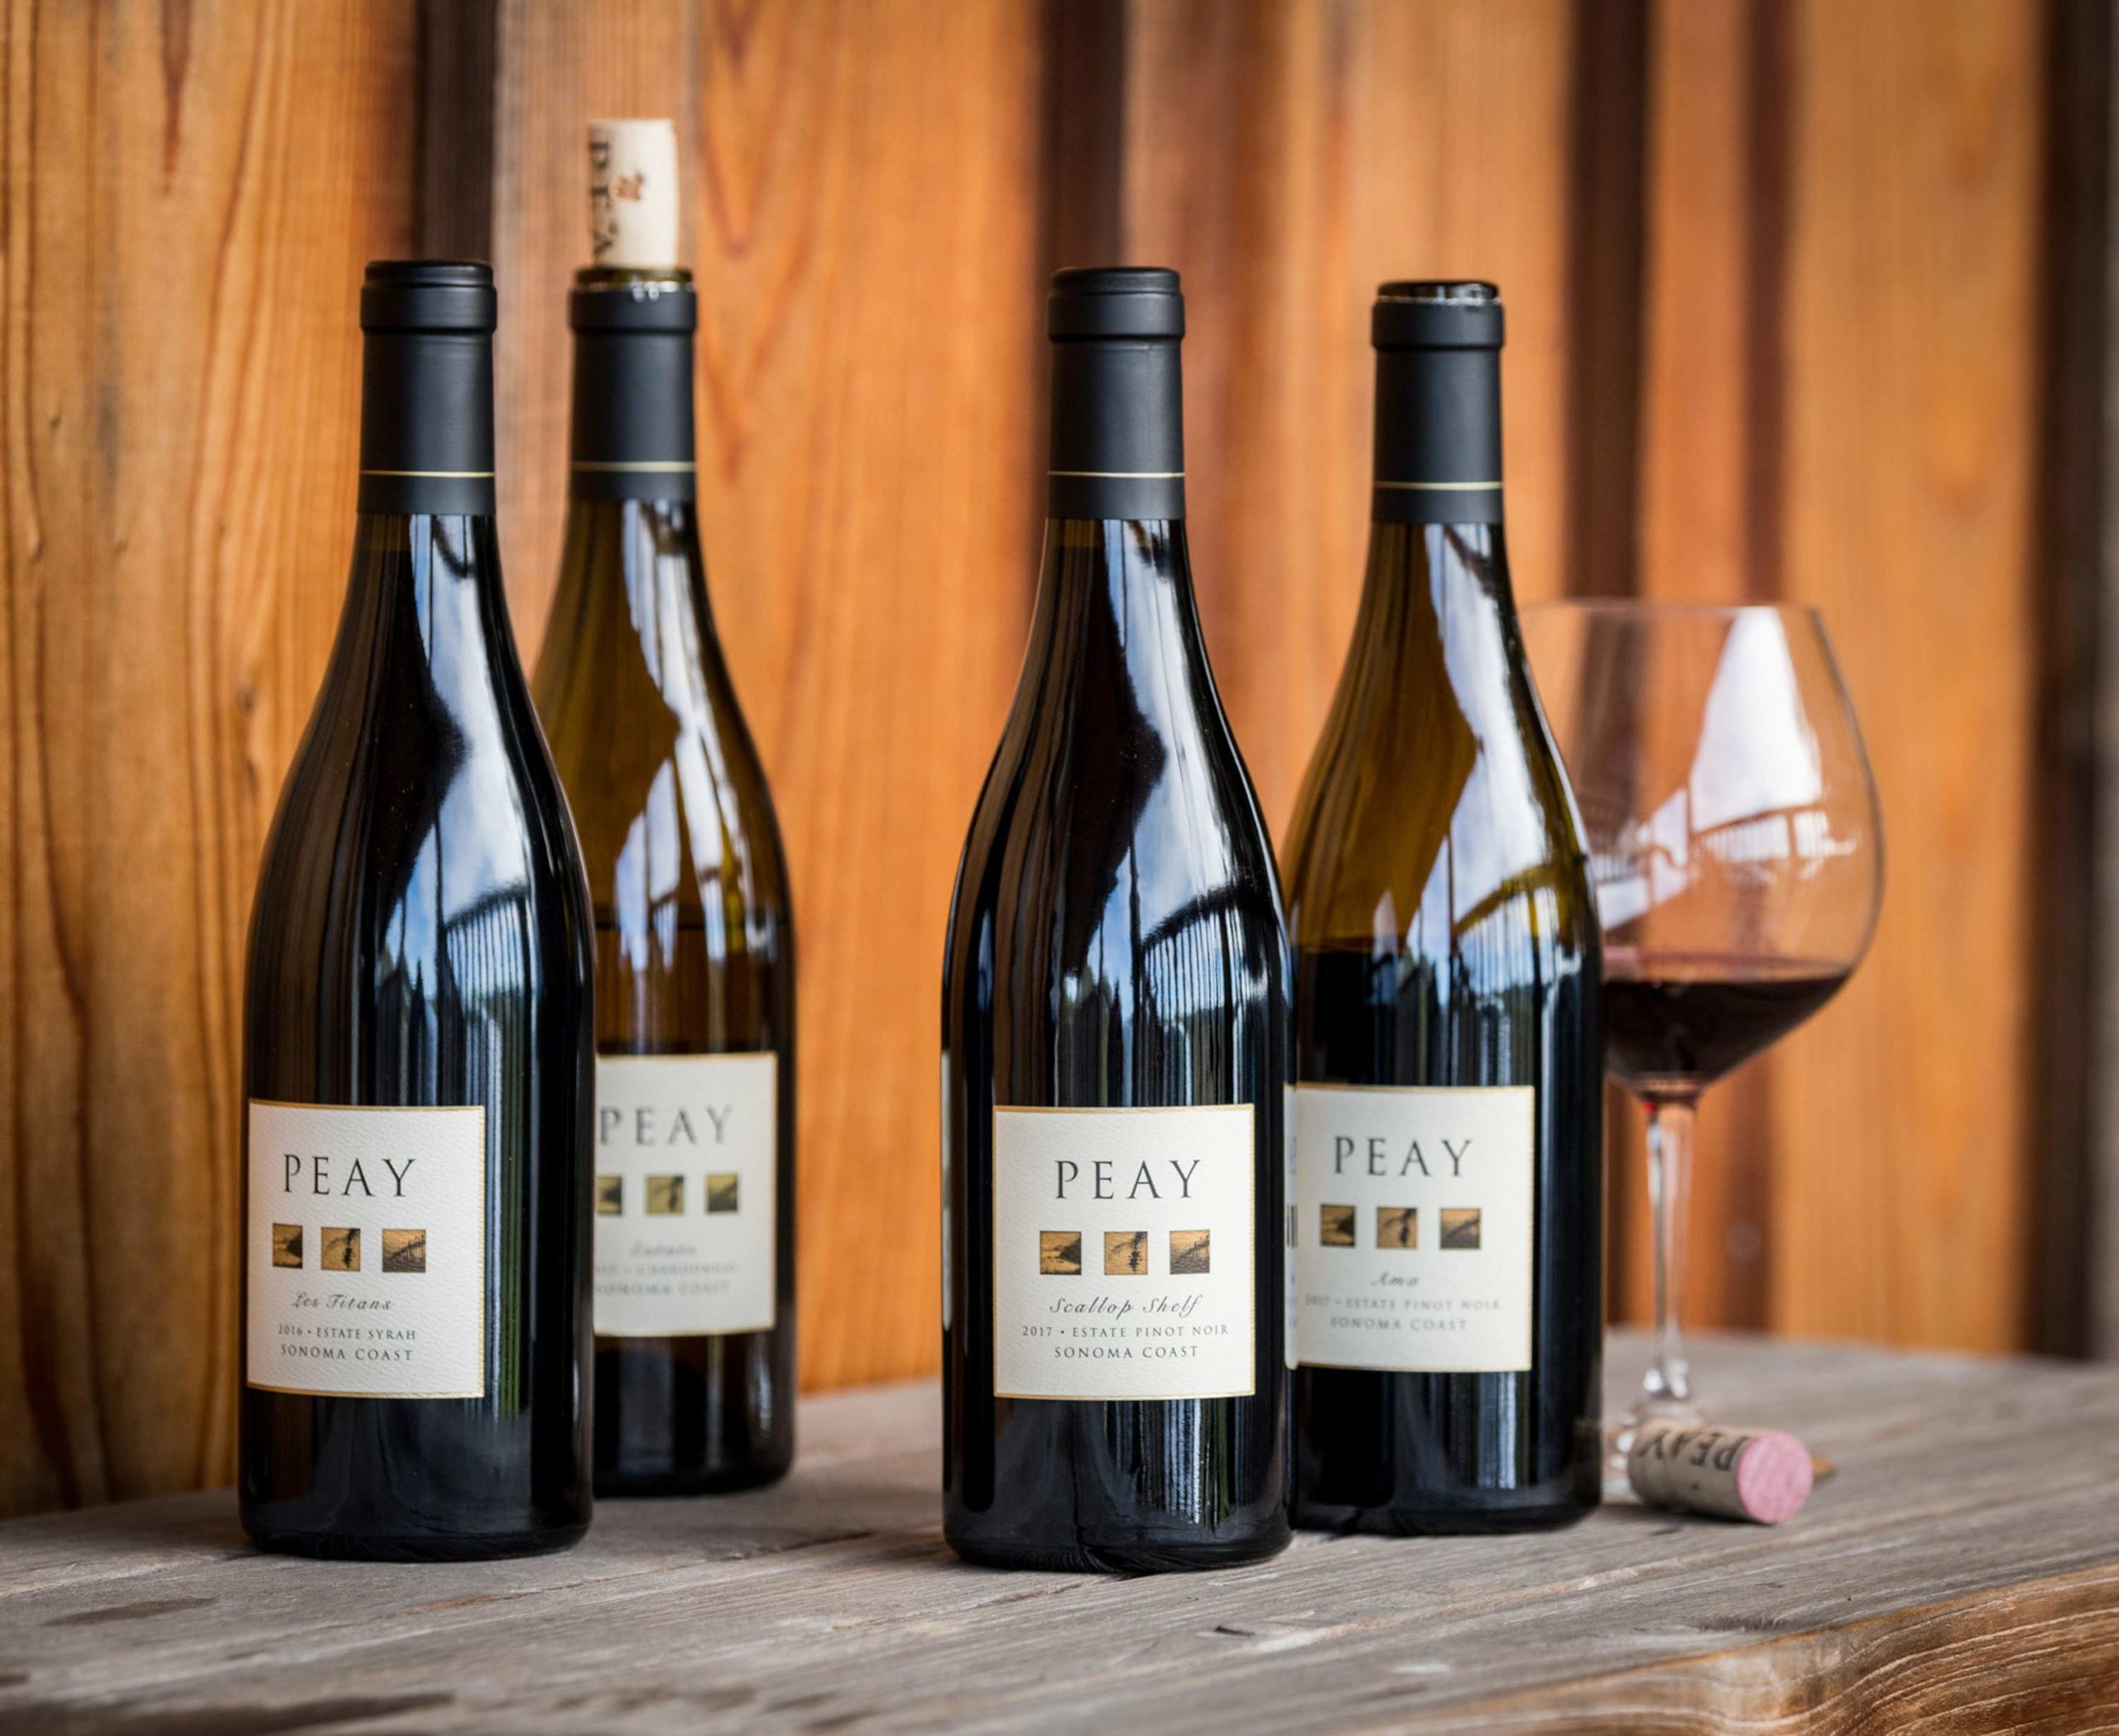 Featured image for Article: 2018 Peay Vineyards Chardonnay, Sonoma Coast